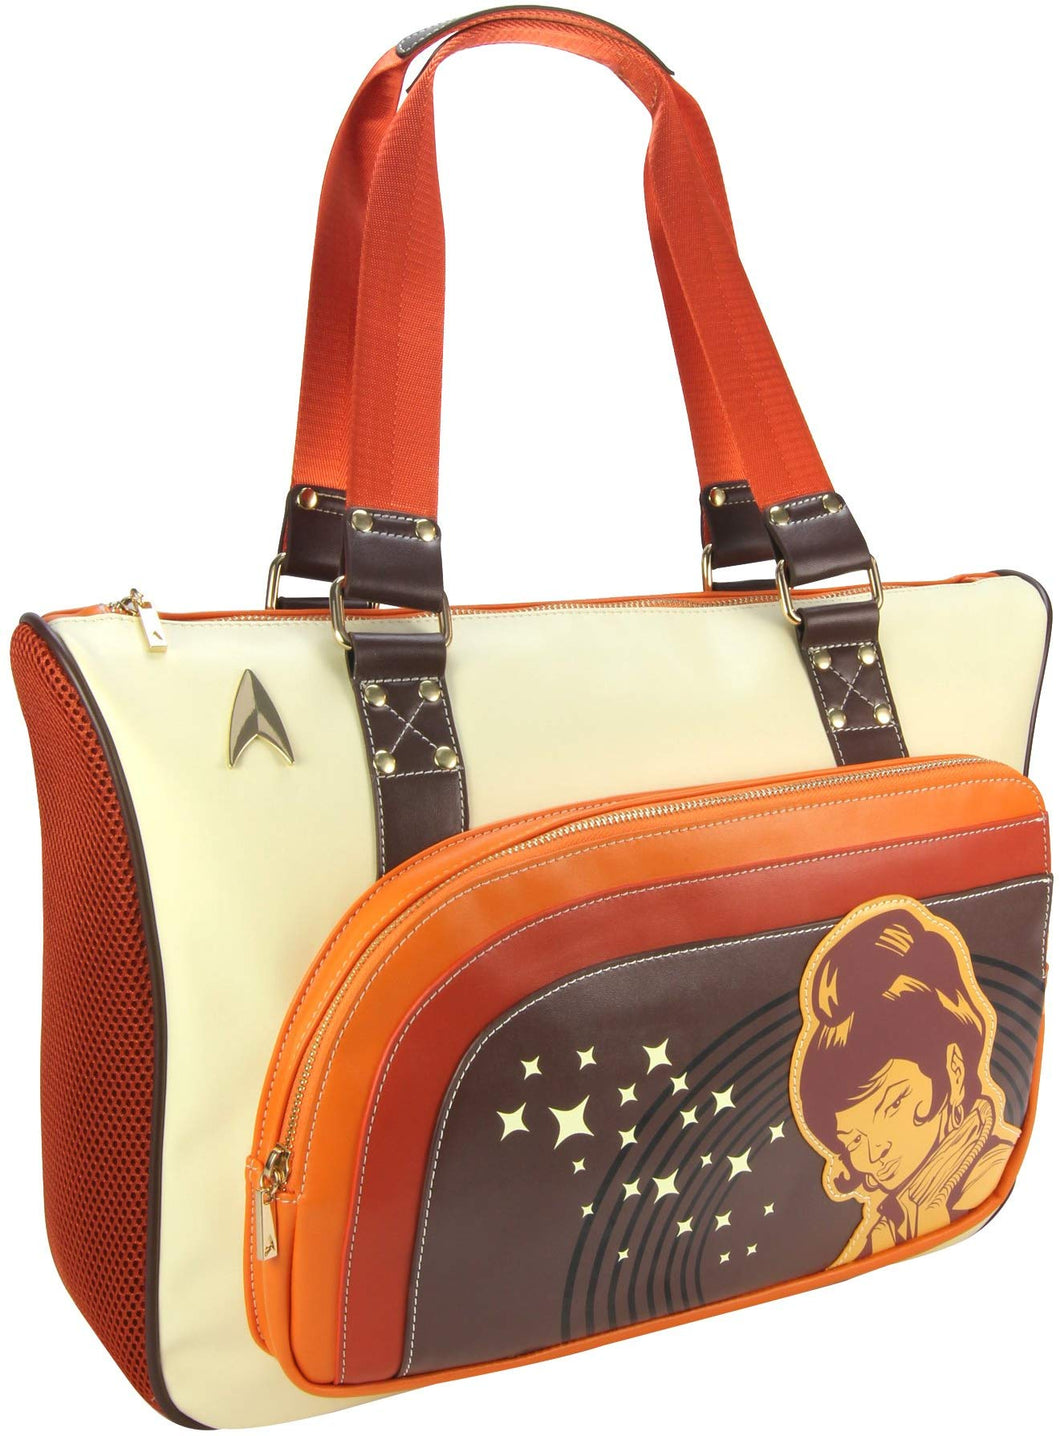 Star Trek The Original Series Uhura Retro Space Tote Purse - TheNerdBox